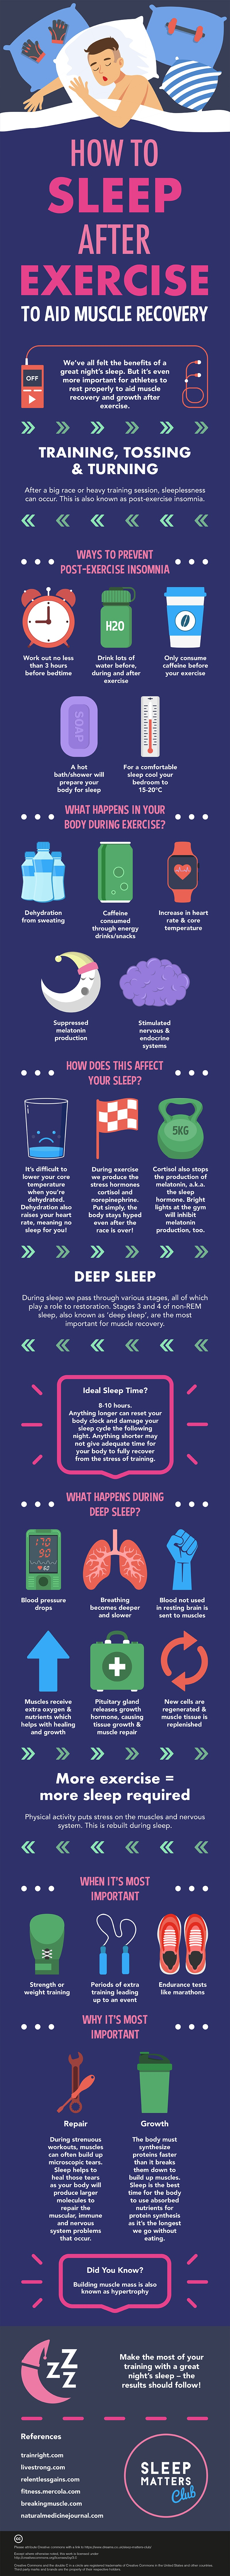 How To Sleep After Exercise Infographic